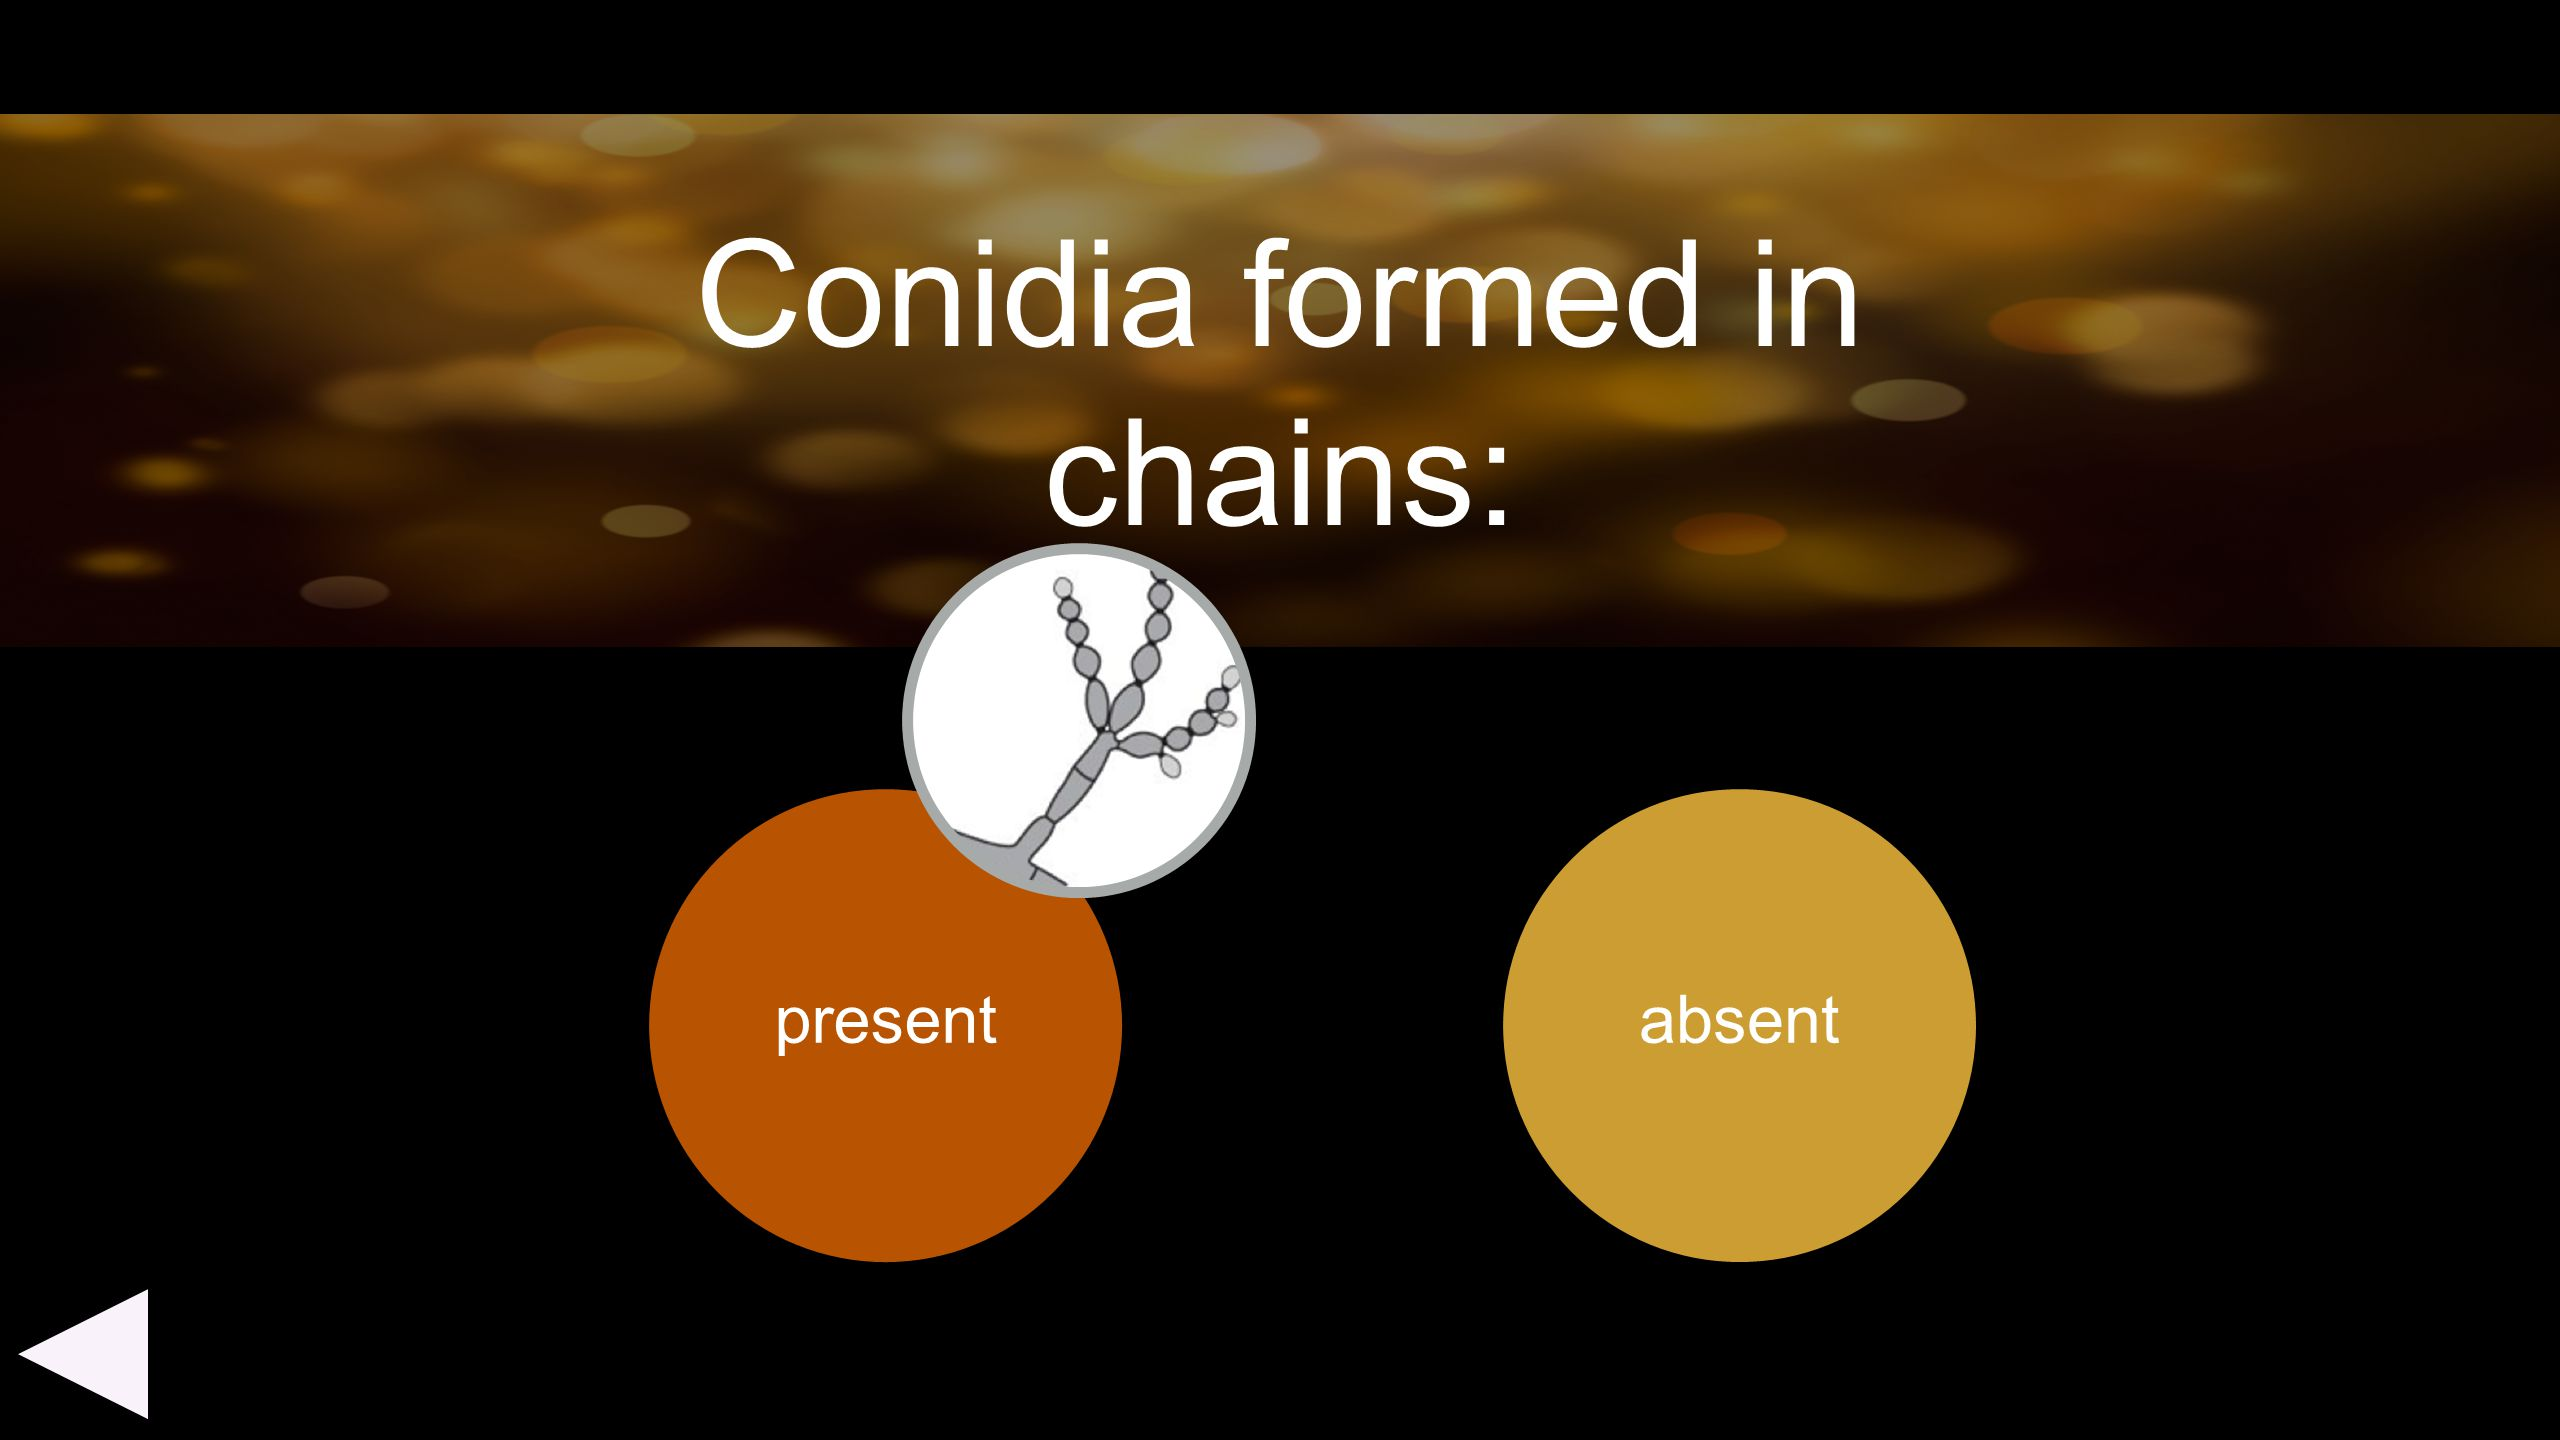 Conidia formed in chains: